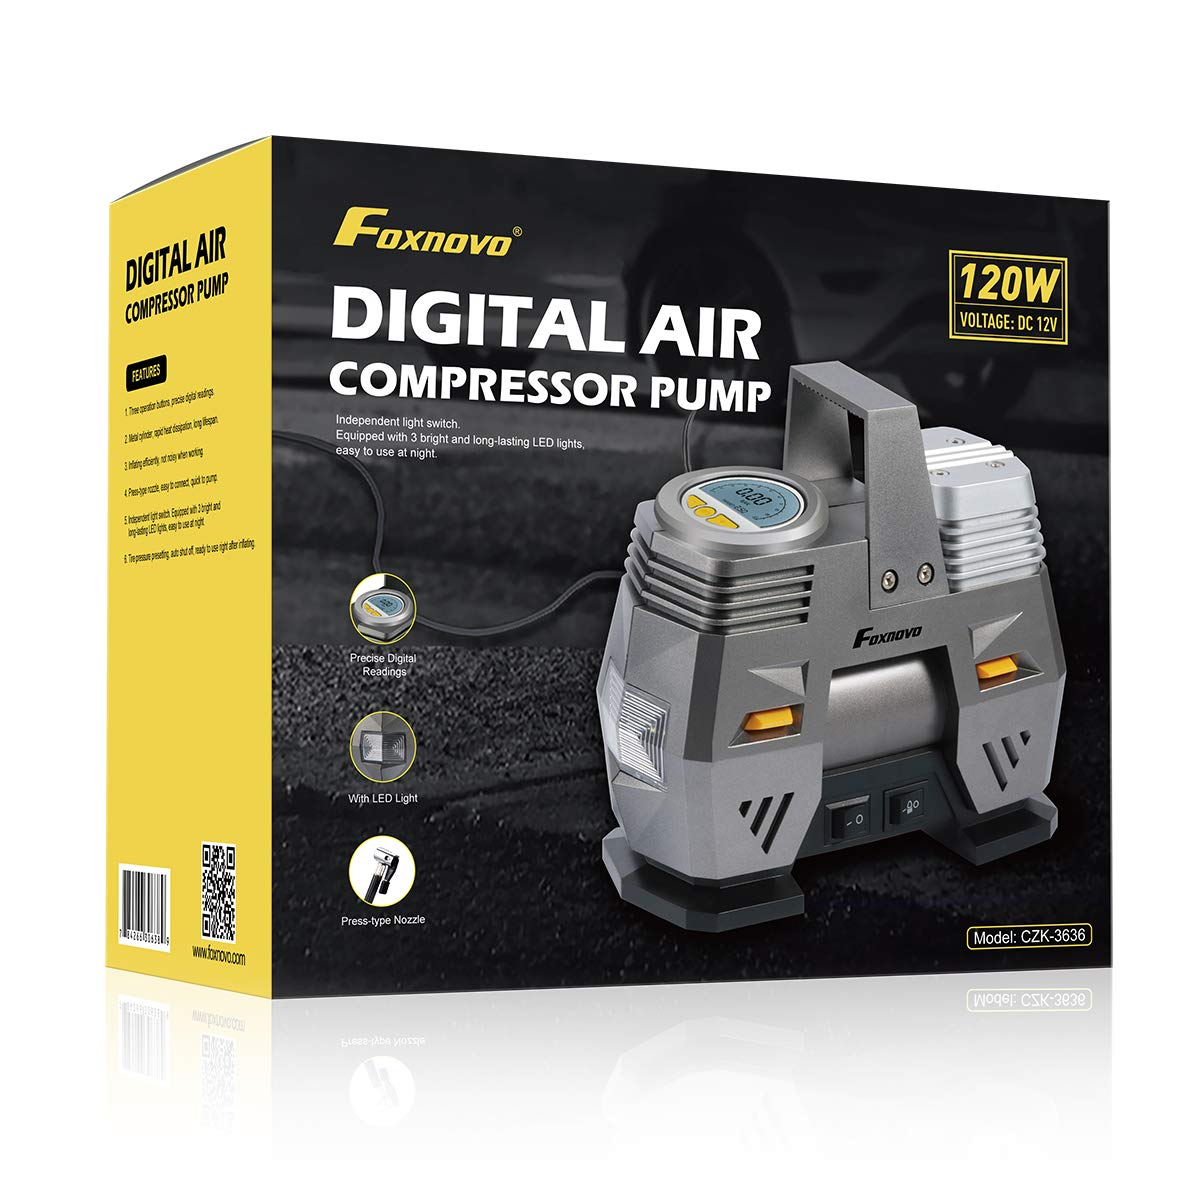 Foxnovo Air Compressor Pump, Digital Tire Inflator 150 PSI DC 12V Low Noise Tire Air Compressor Portable with Larger Air Flow 35L/Min, LED Light, Overheat Protection, Extra Nozzle Adaptors and Fuse by Foxnovo (Image #9)